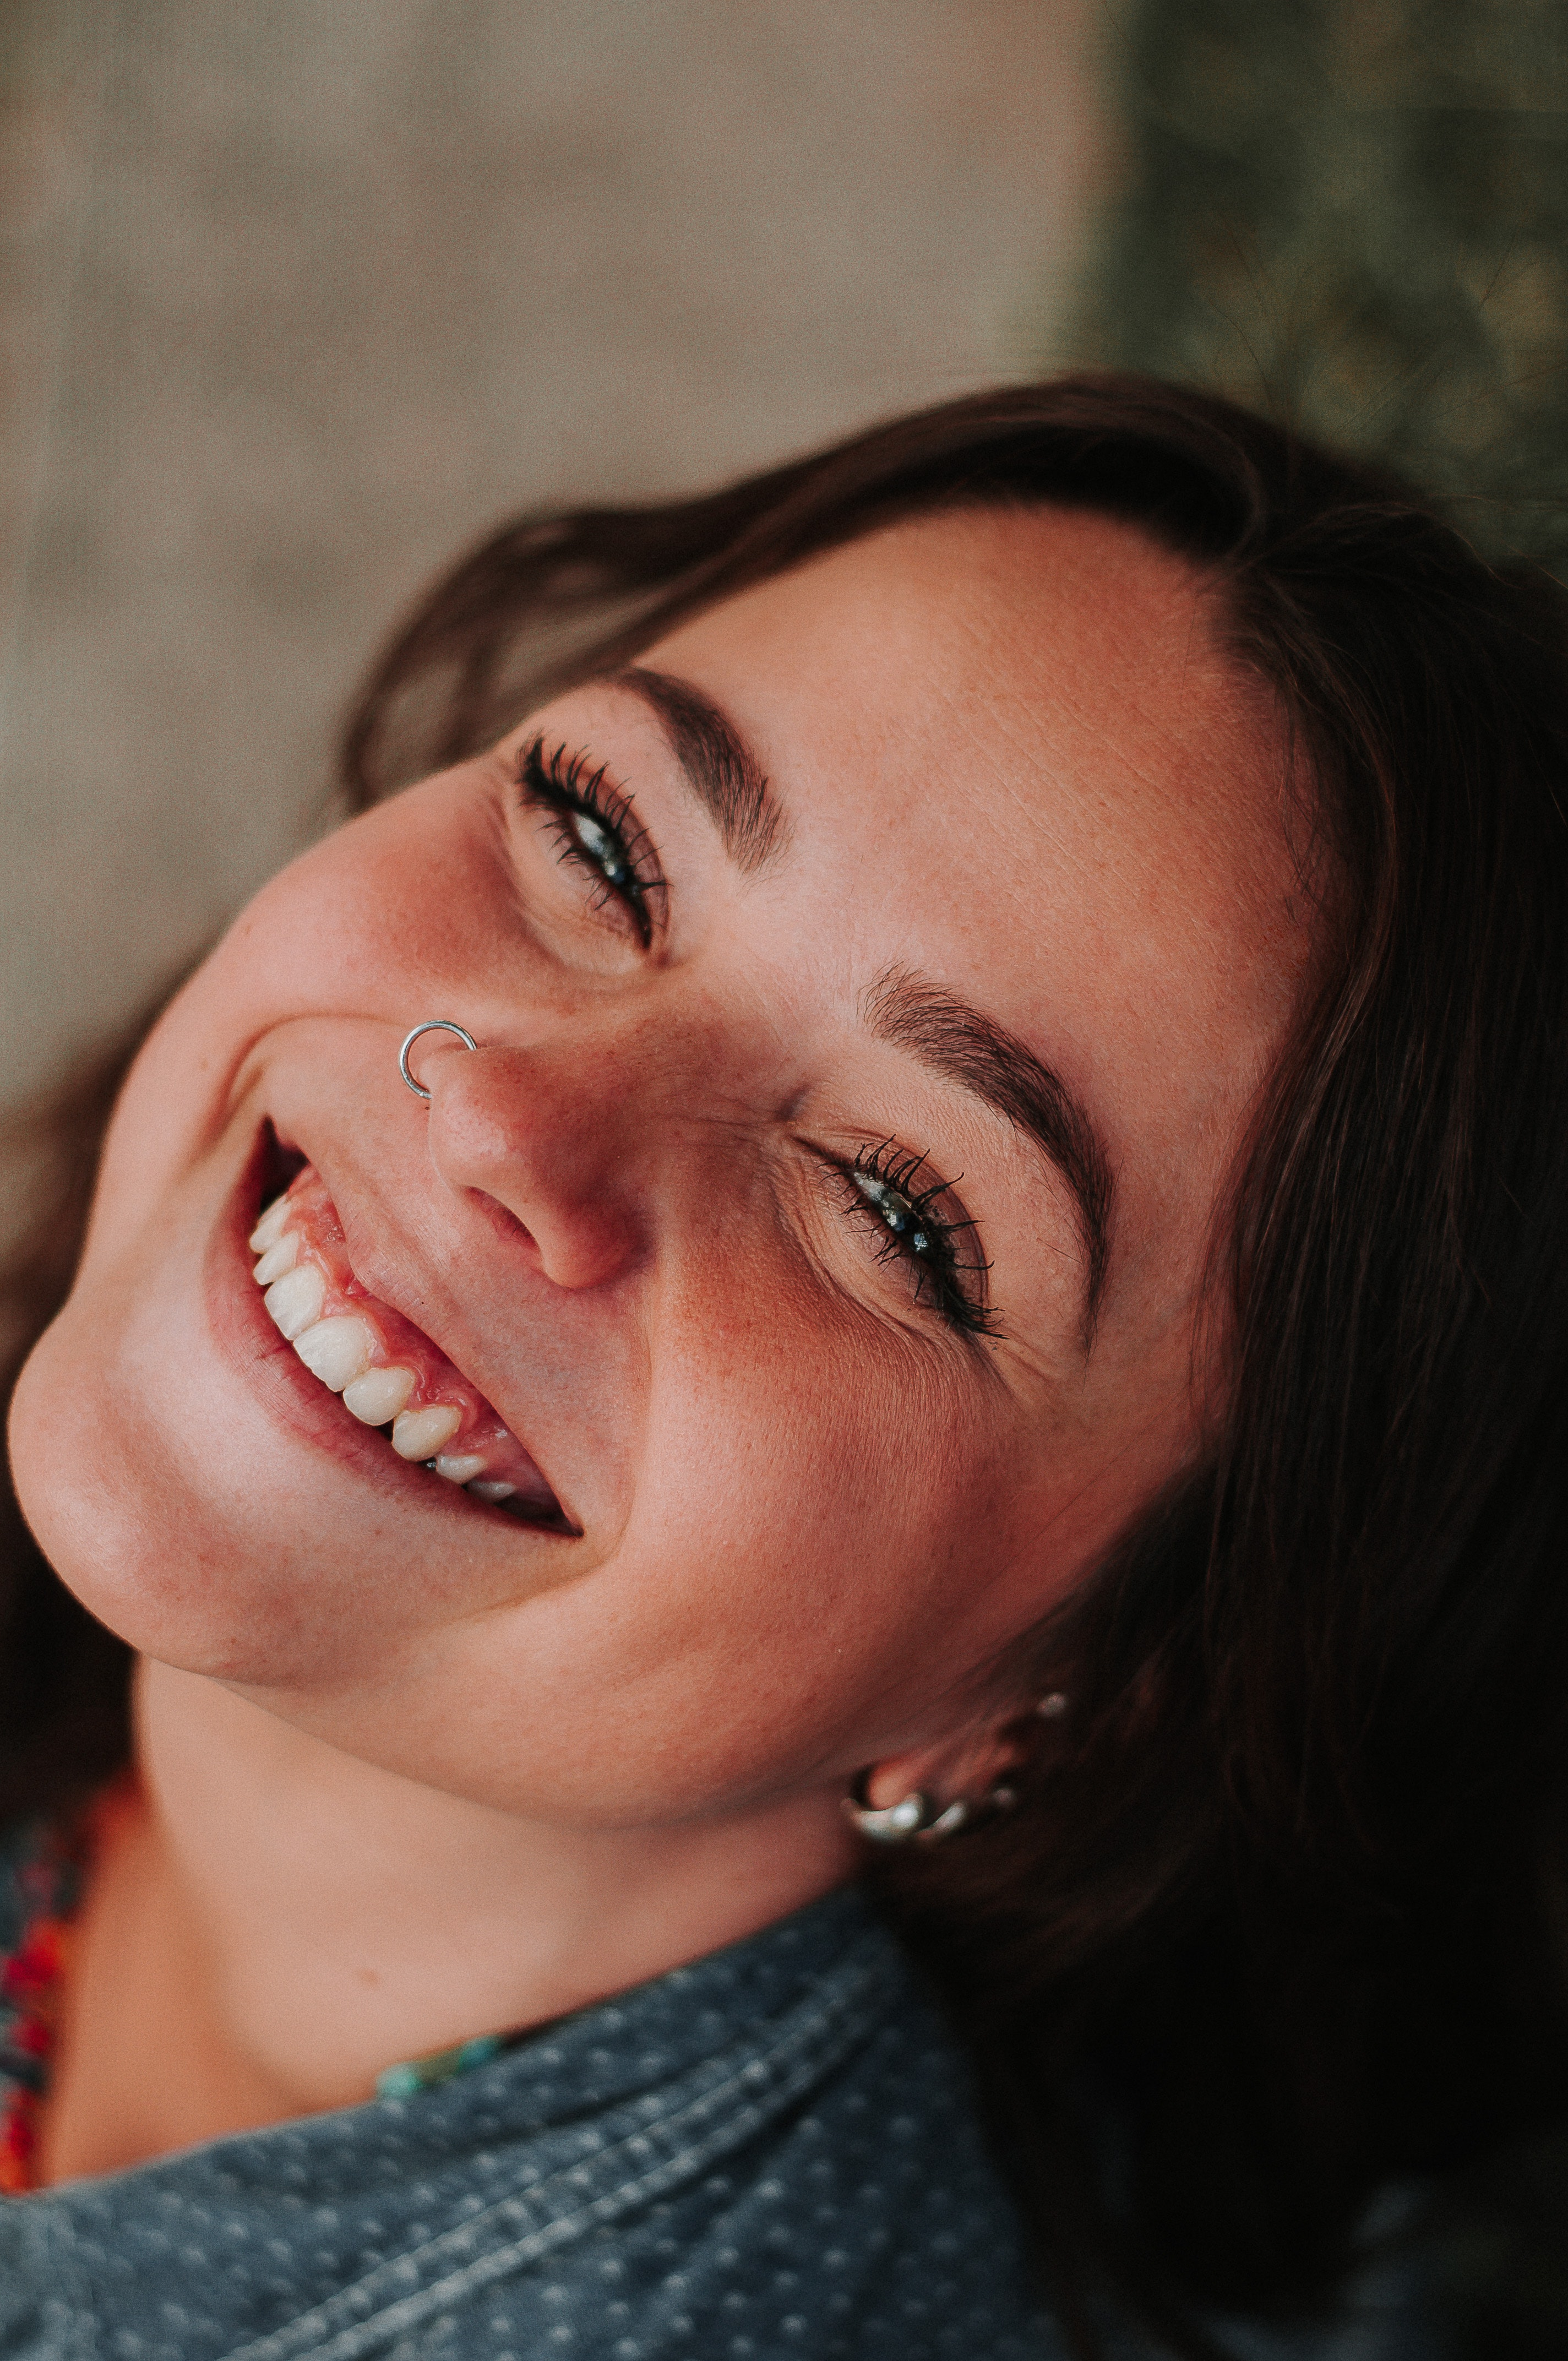 Woman Smiling With Nose Piercing Free Stock Photo